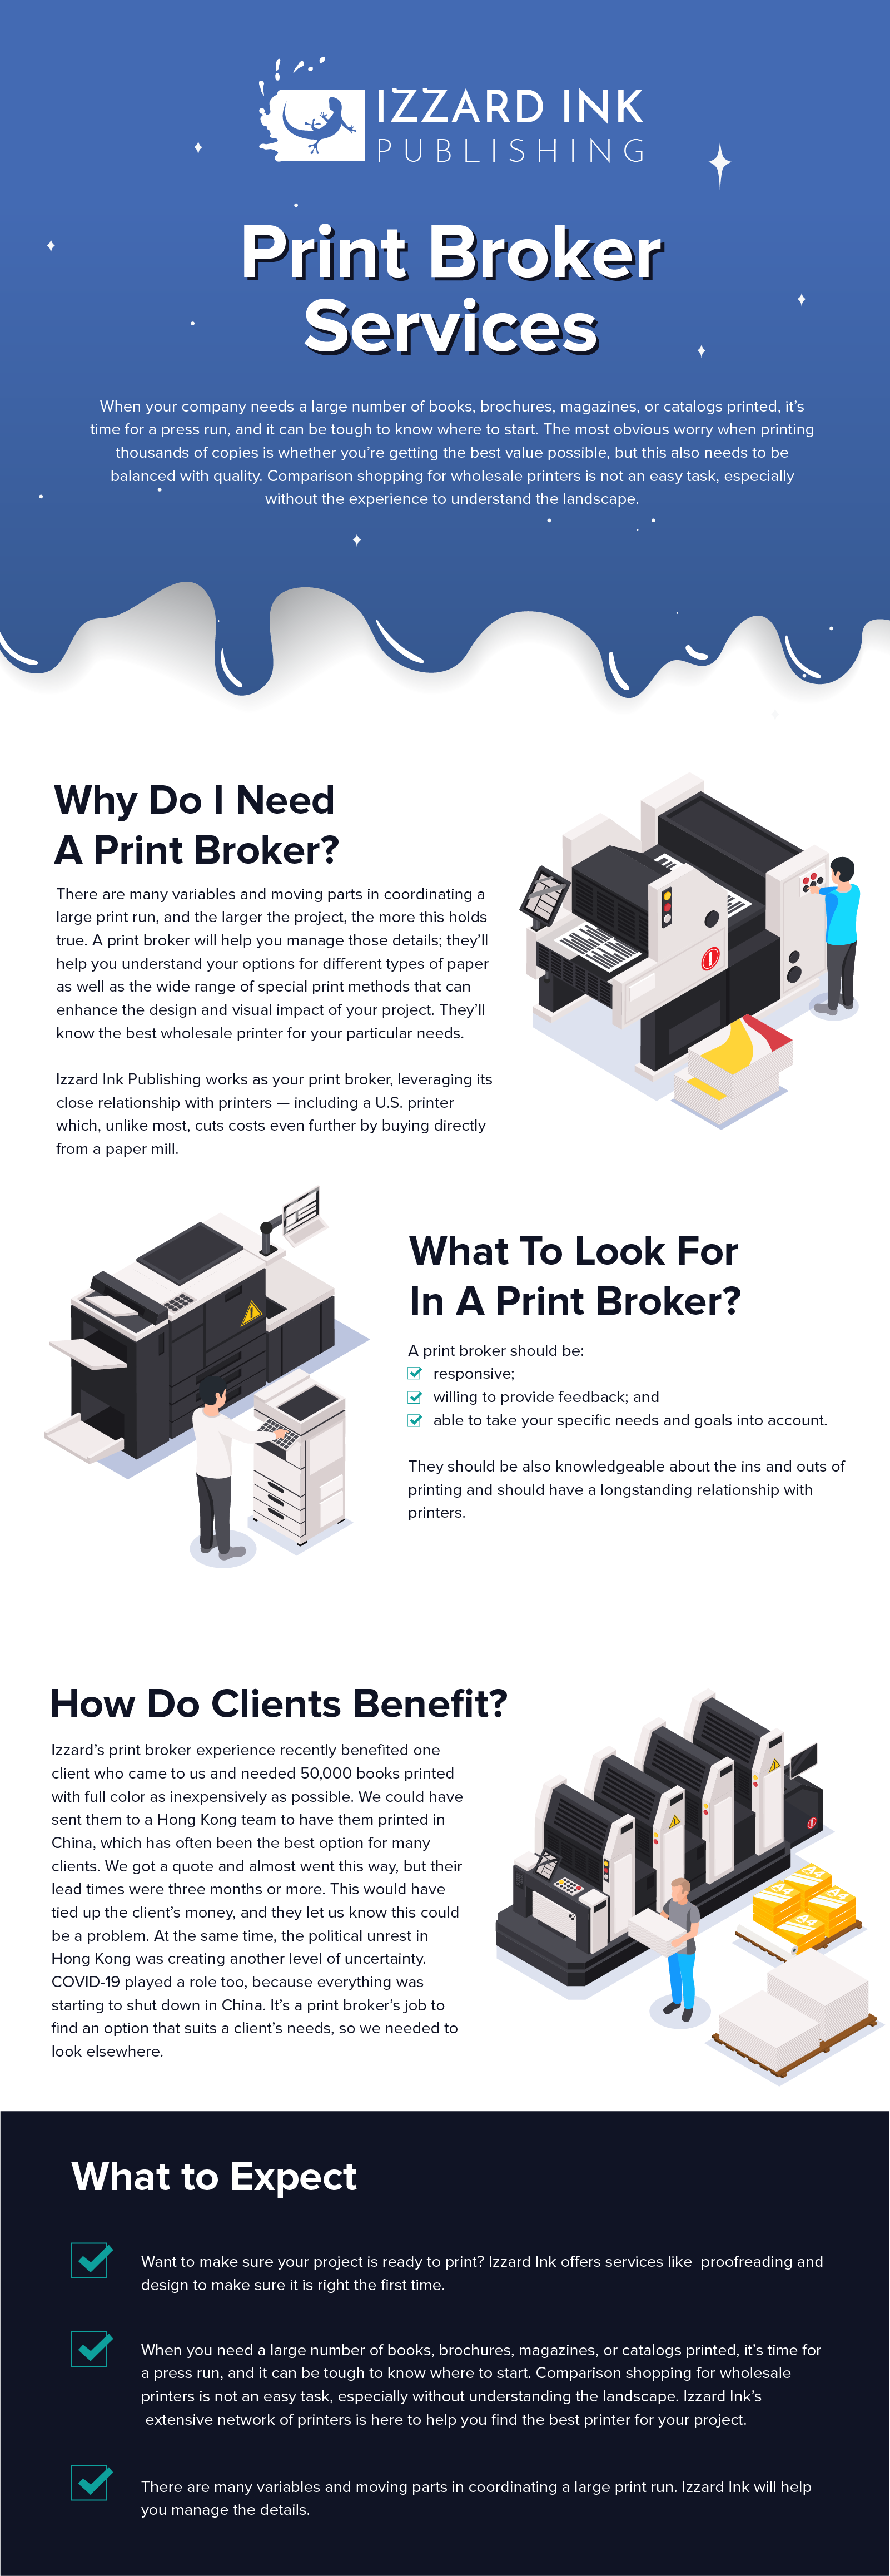 Print Broker Services Infographic